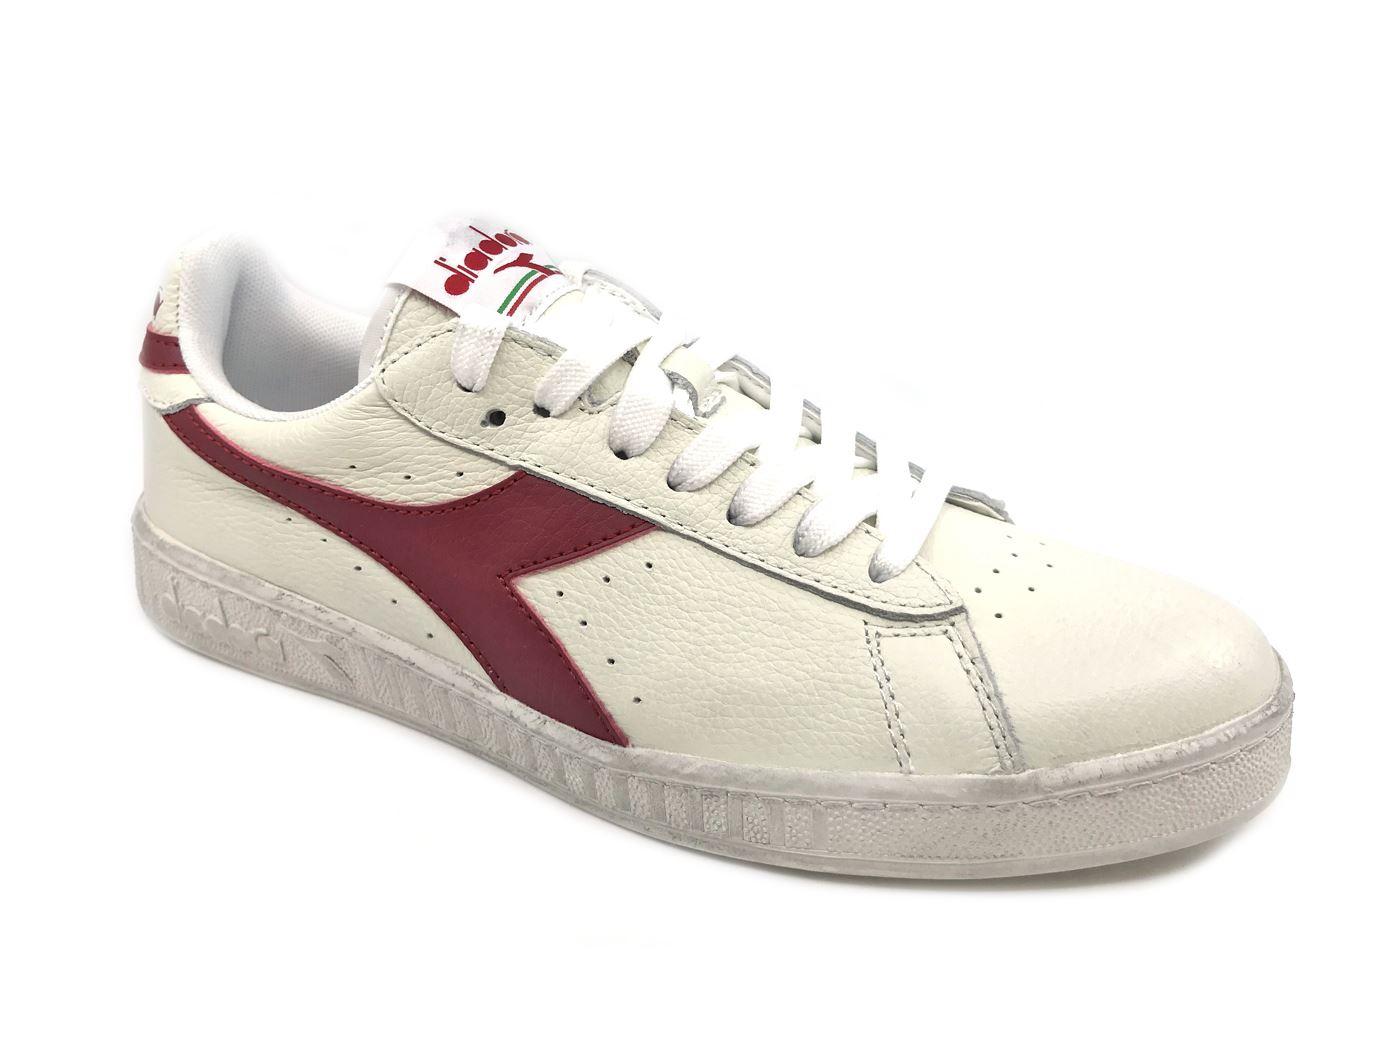 DIADORA GAME L LOW PELLE WAXED C5147 SNEAKER IN PELLE LOW MainApps e4786c